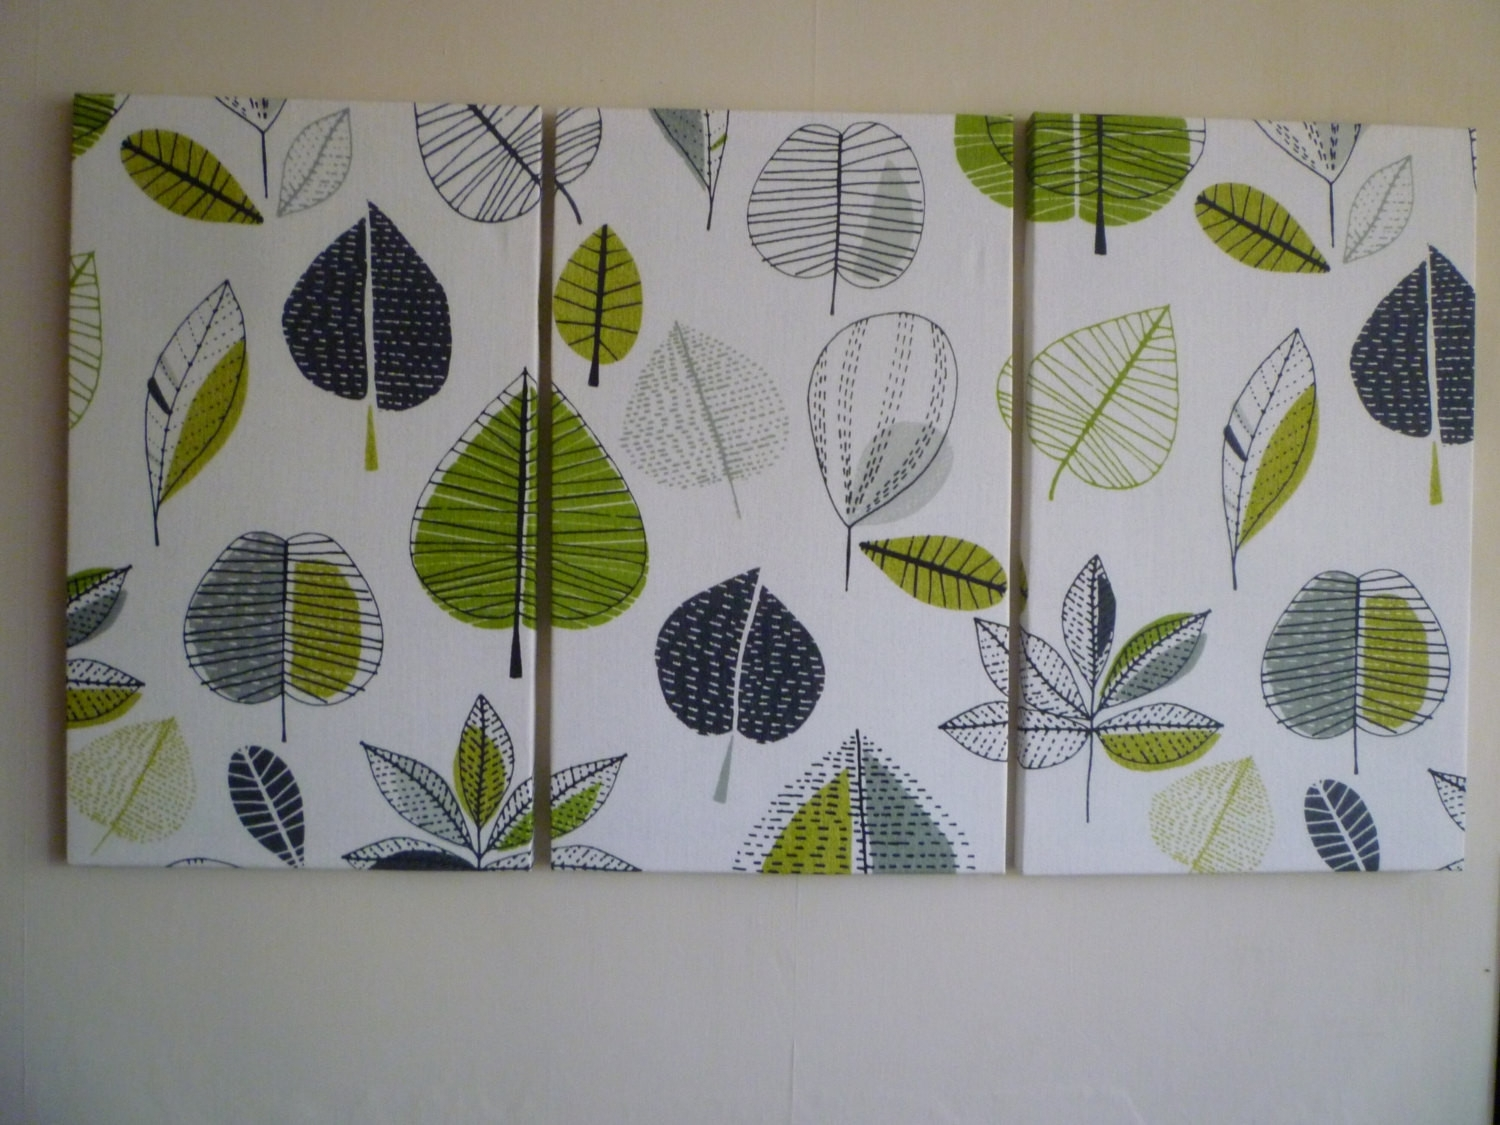 Classy Inspiration Fabric Wall Hanging How To Make A The Ribbon Regarding 2017 Fabric For Wall Art Hangings (Gallery 12 of 15)